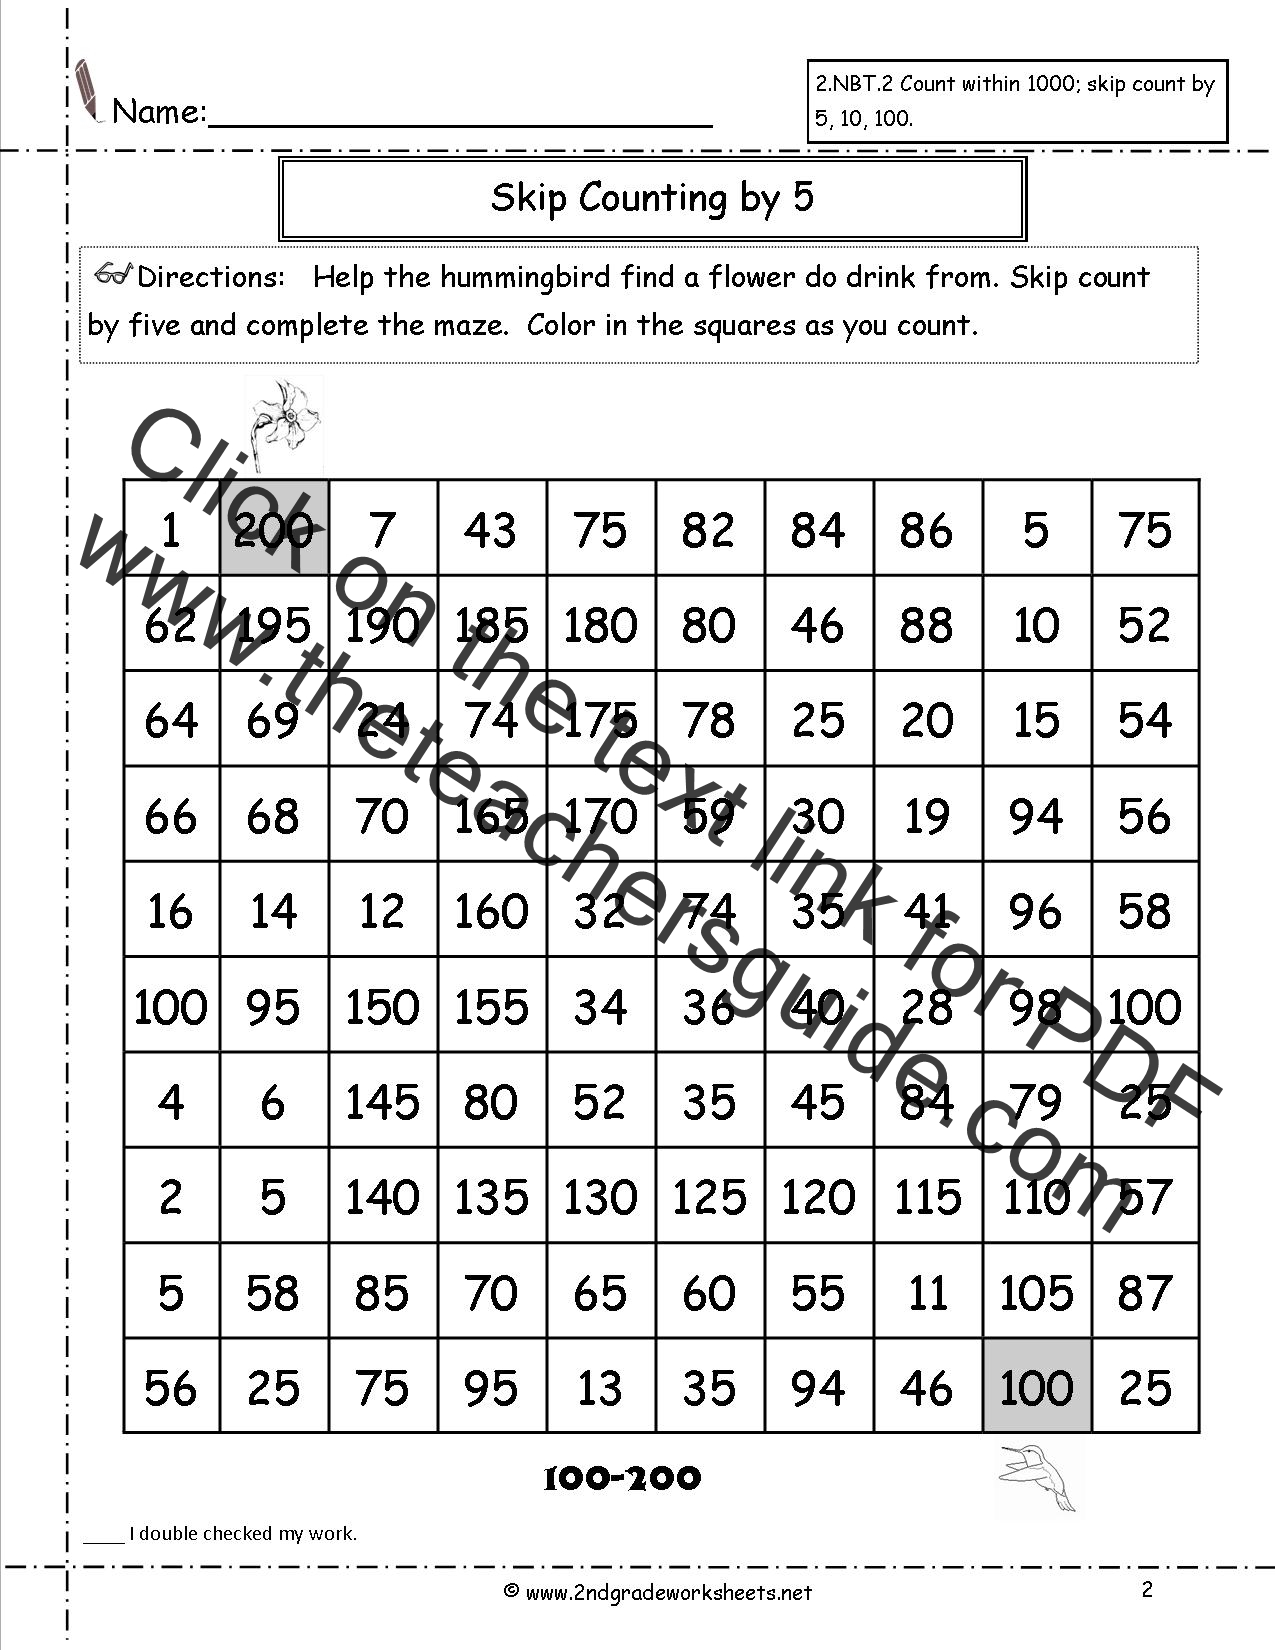 Printables Skip Counting Worksheets free skip counting worksheets count by 5 maze